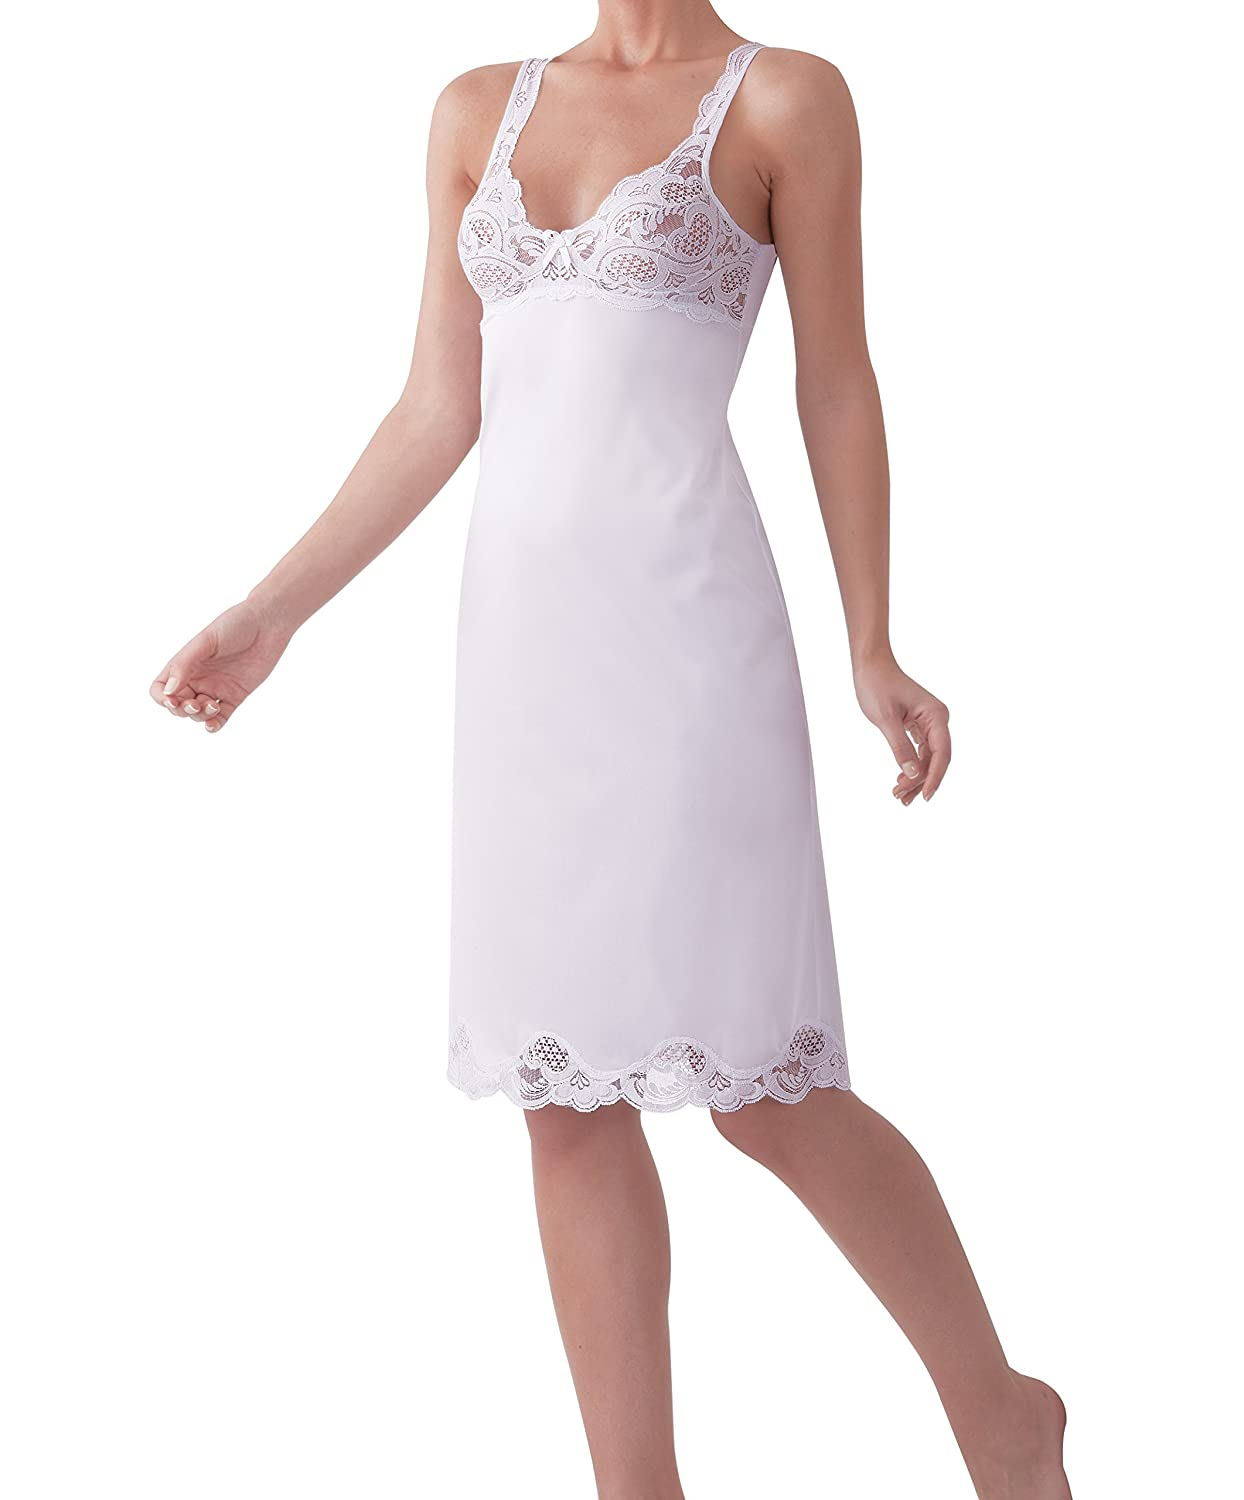 Under Moments Antistatic Vintage-style Full Slip w/ Elegant Lace Details UM2068